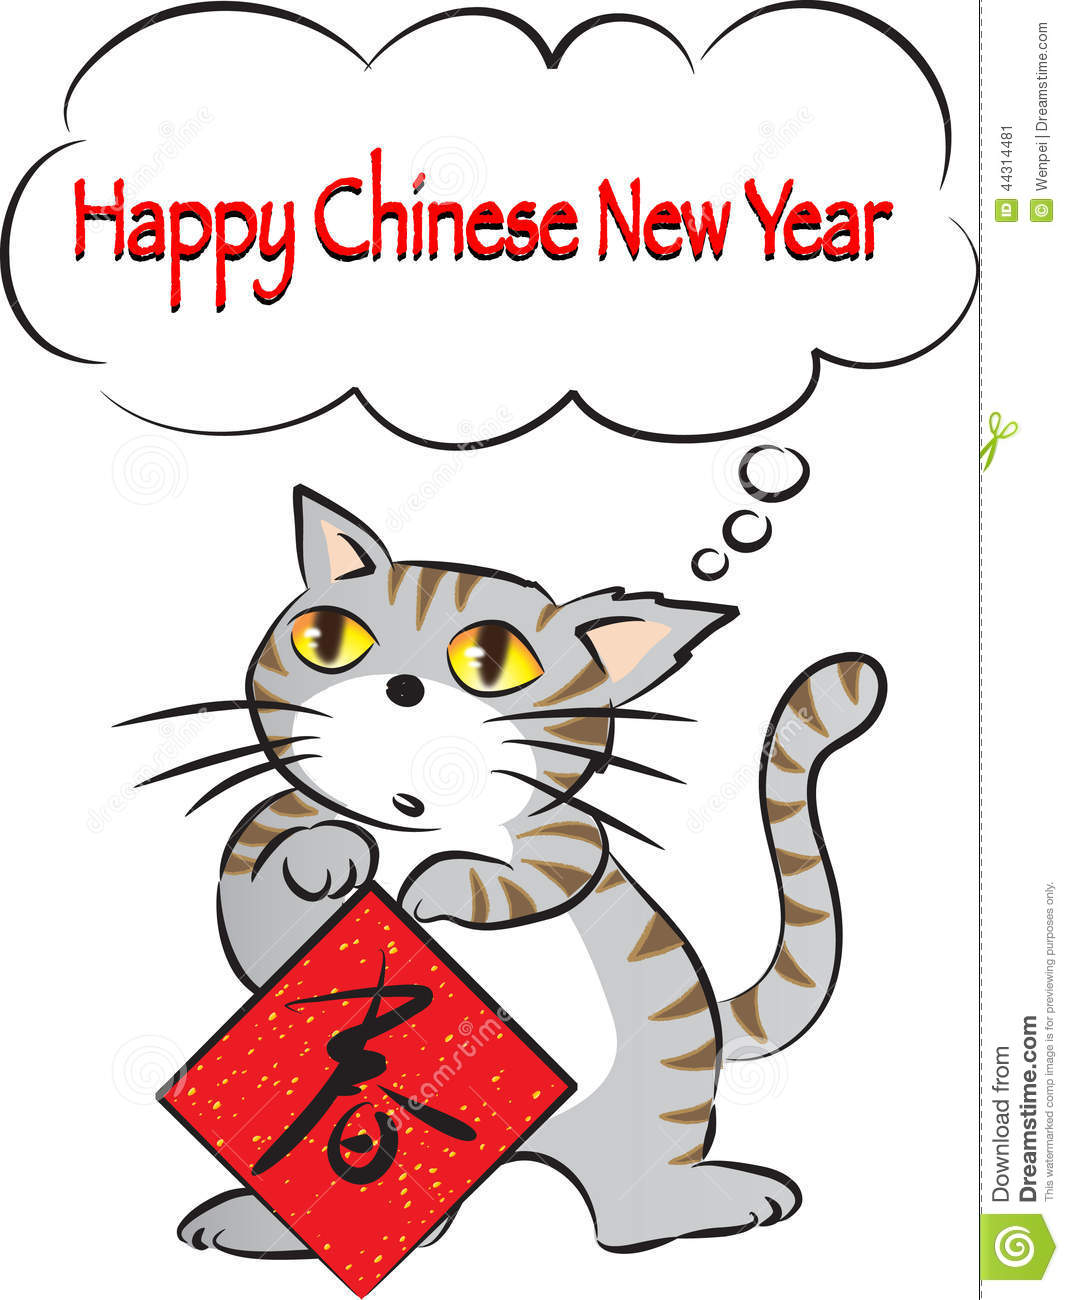 happy chinese new year - How To Say Happy Chinese New Year In Chinese